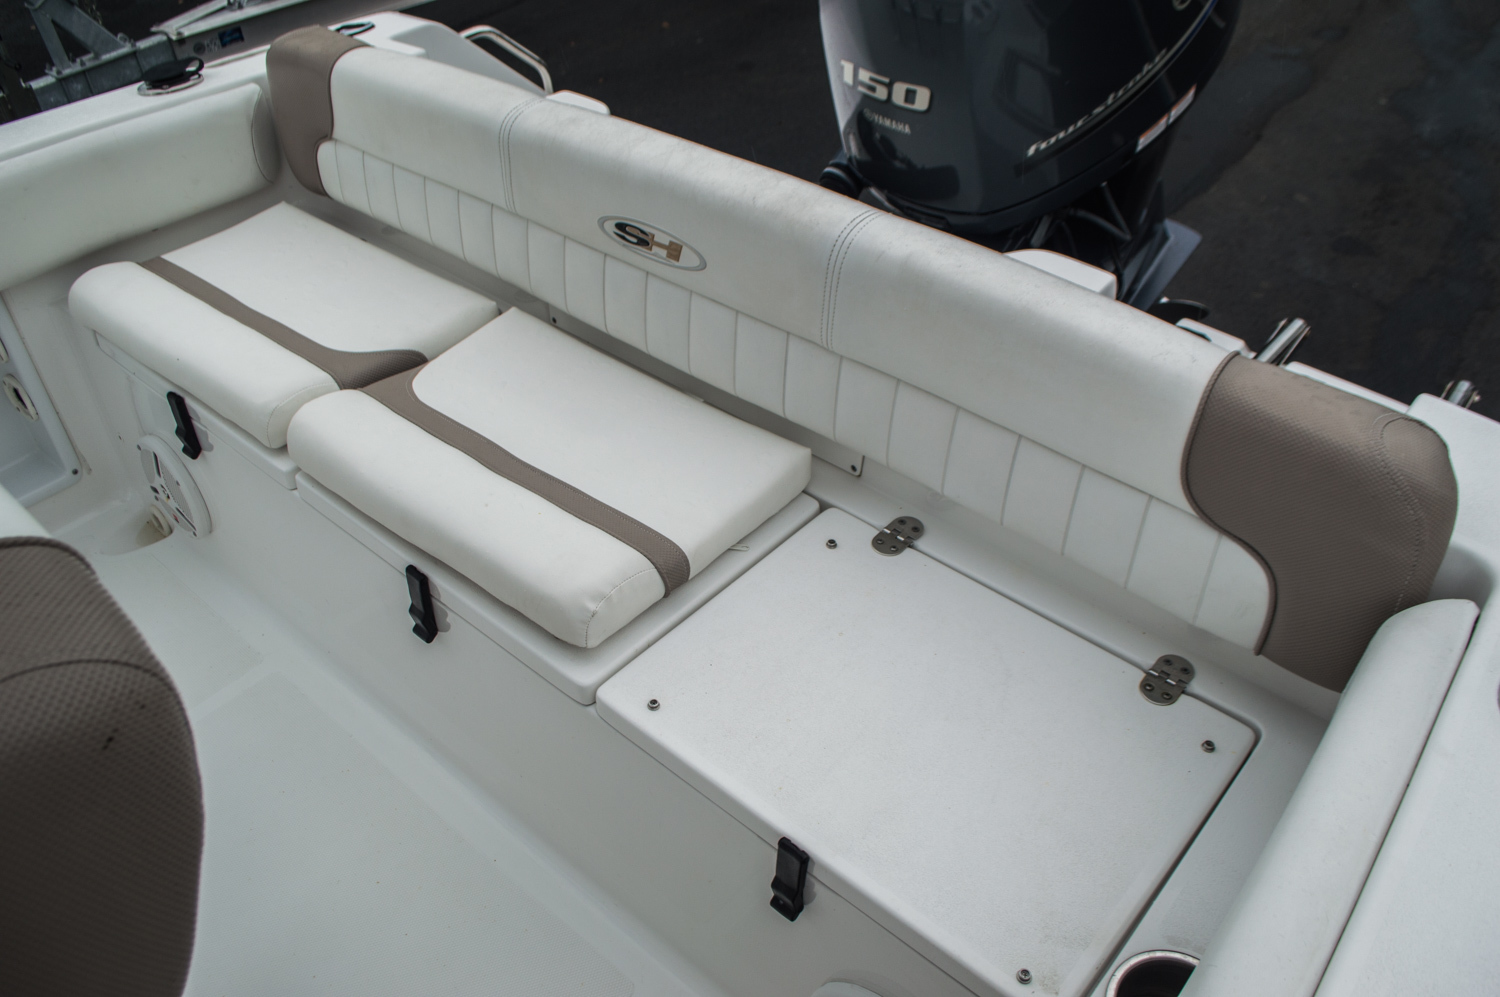 Thumbnail 33 for Used 2012 Sea Hunt 211 Ultra boat for sale in West Palm Beach, FL